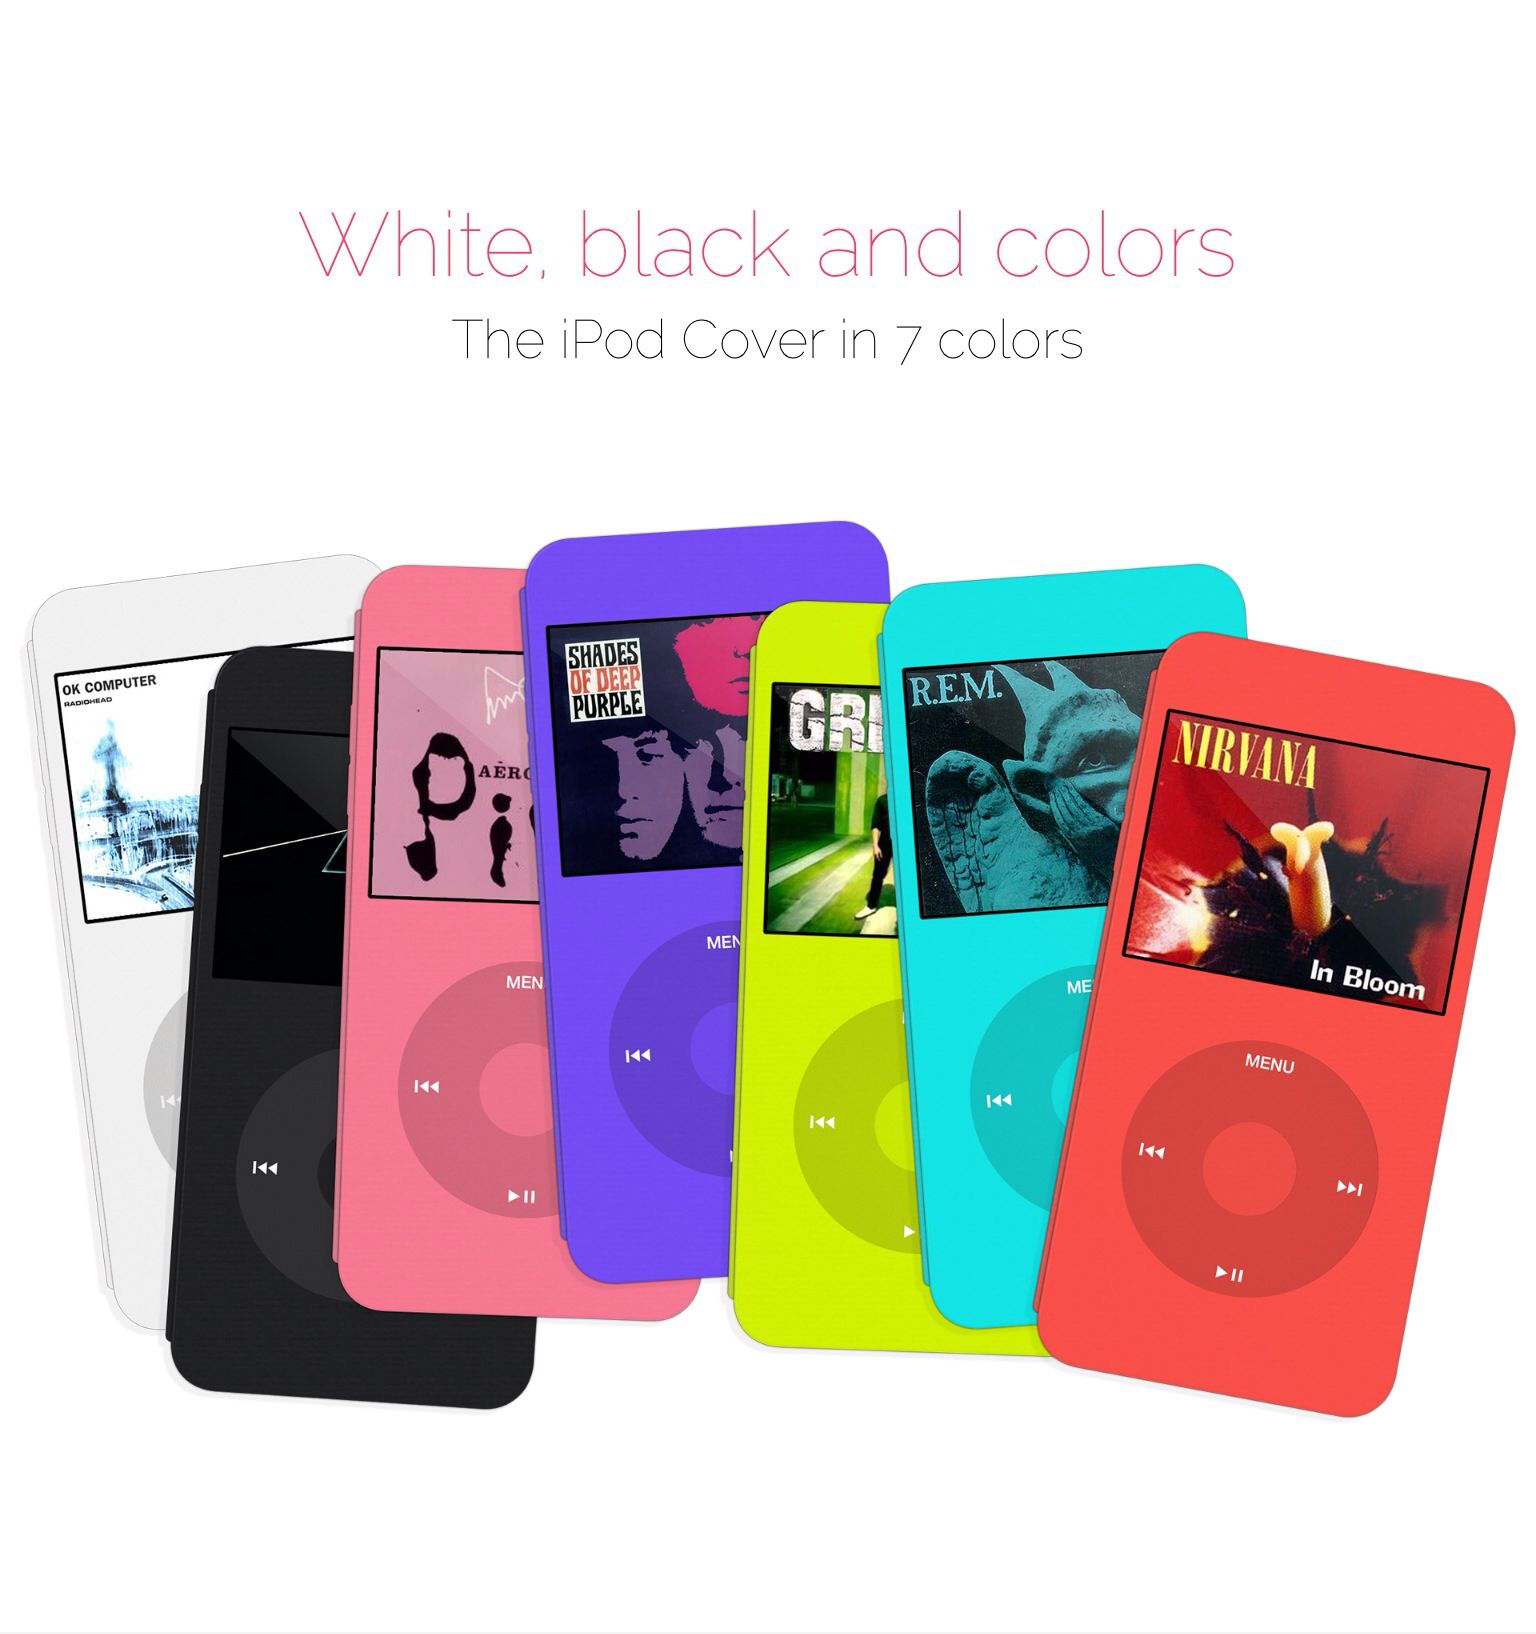 iPod Cover. Let's bring back the iPod to the iphone 6+